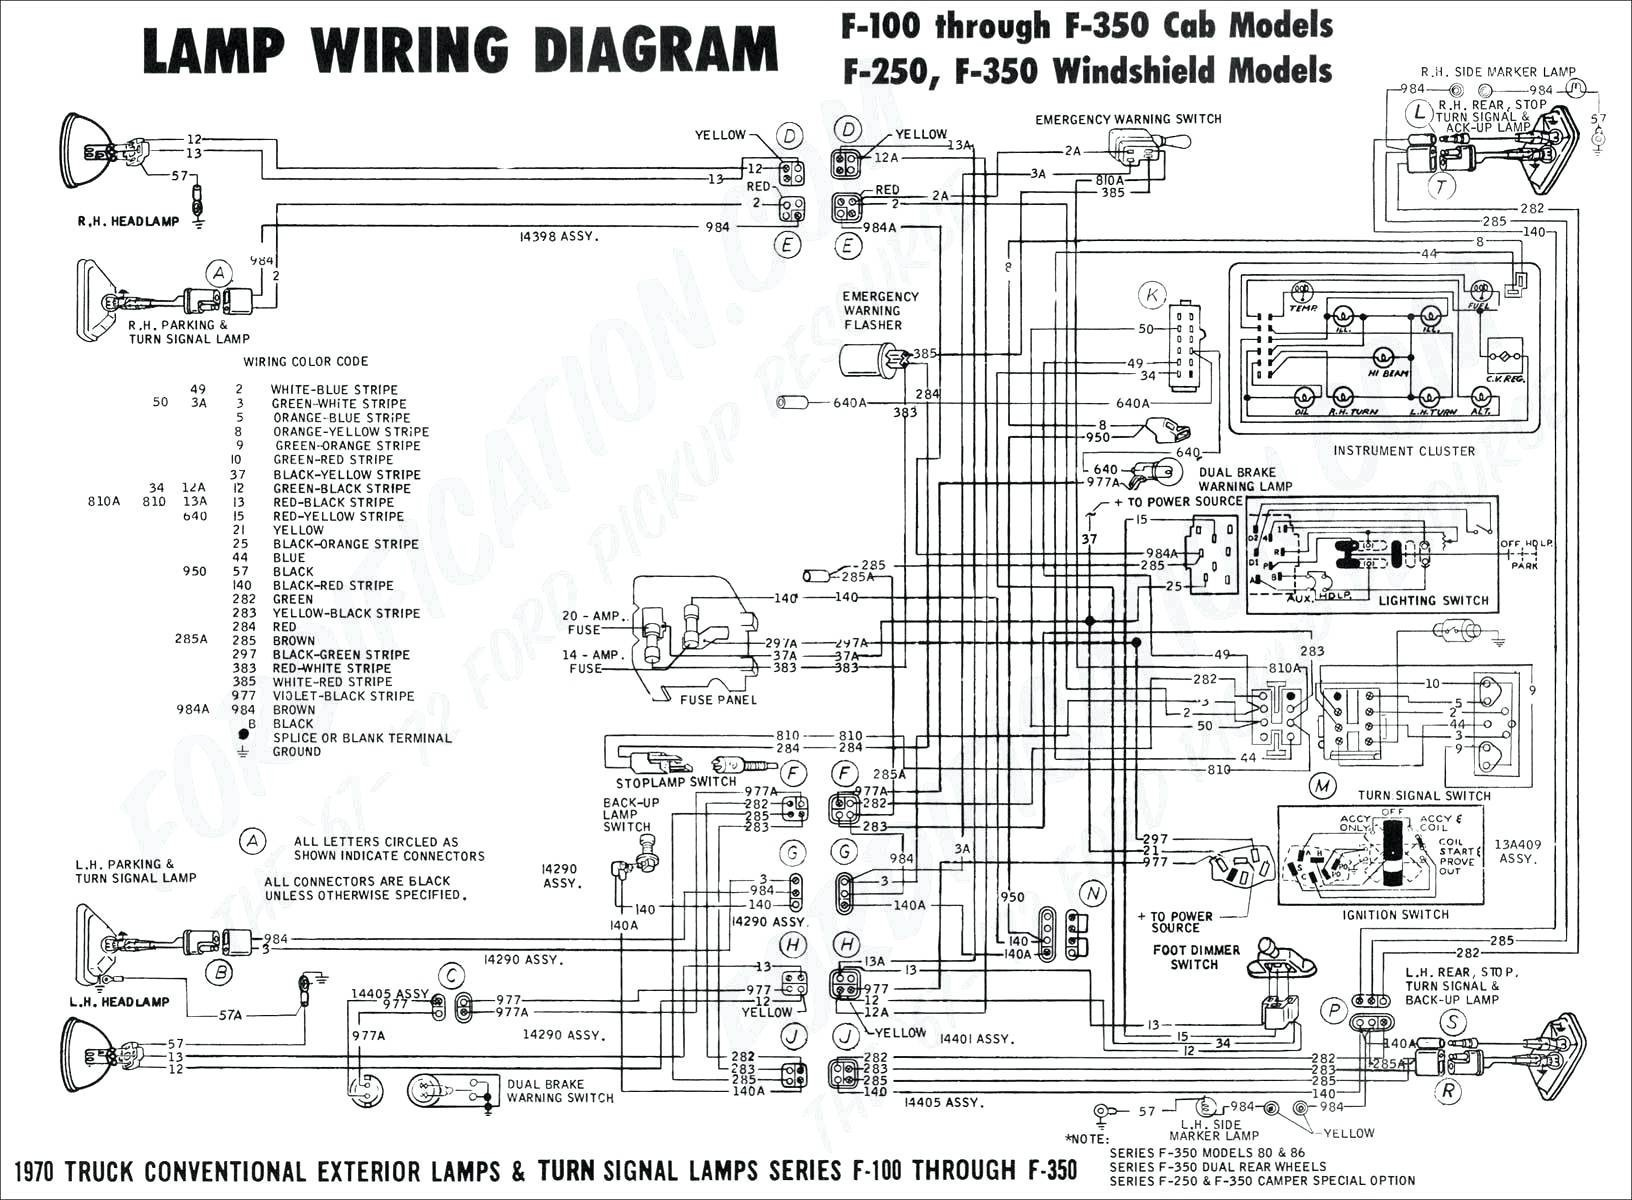 Best Of 7 Way Trailer Plug Wiring Diagram Chevy